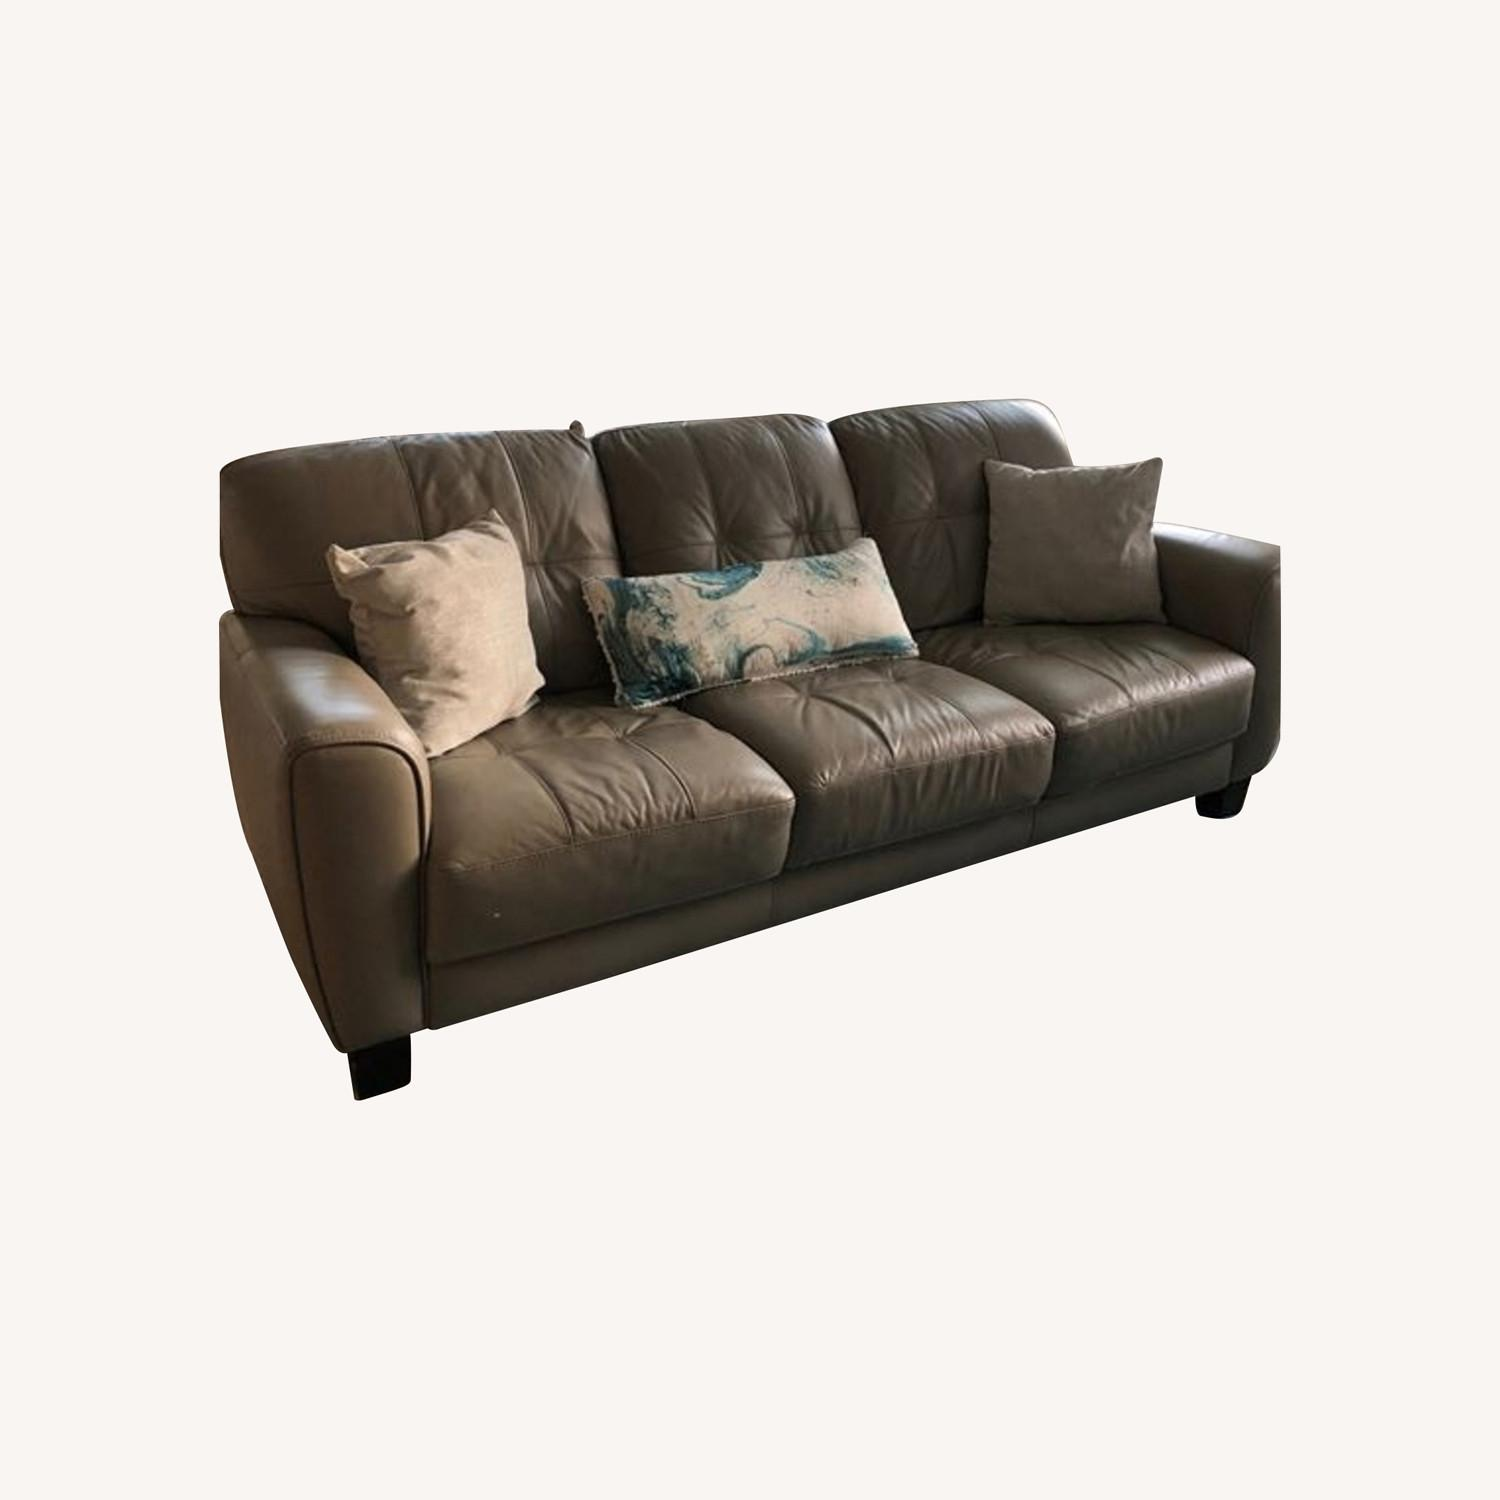 Macy's Tufted Leather Sofa - image-0